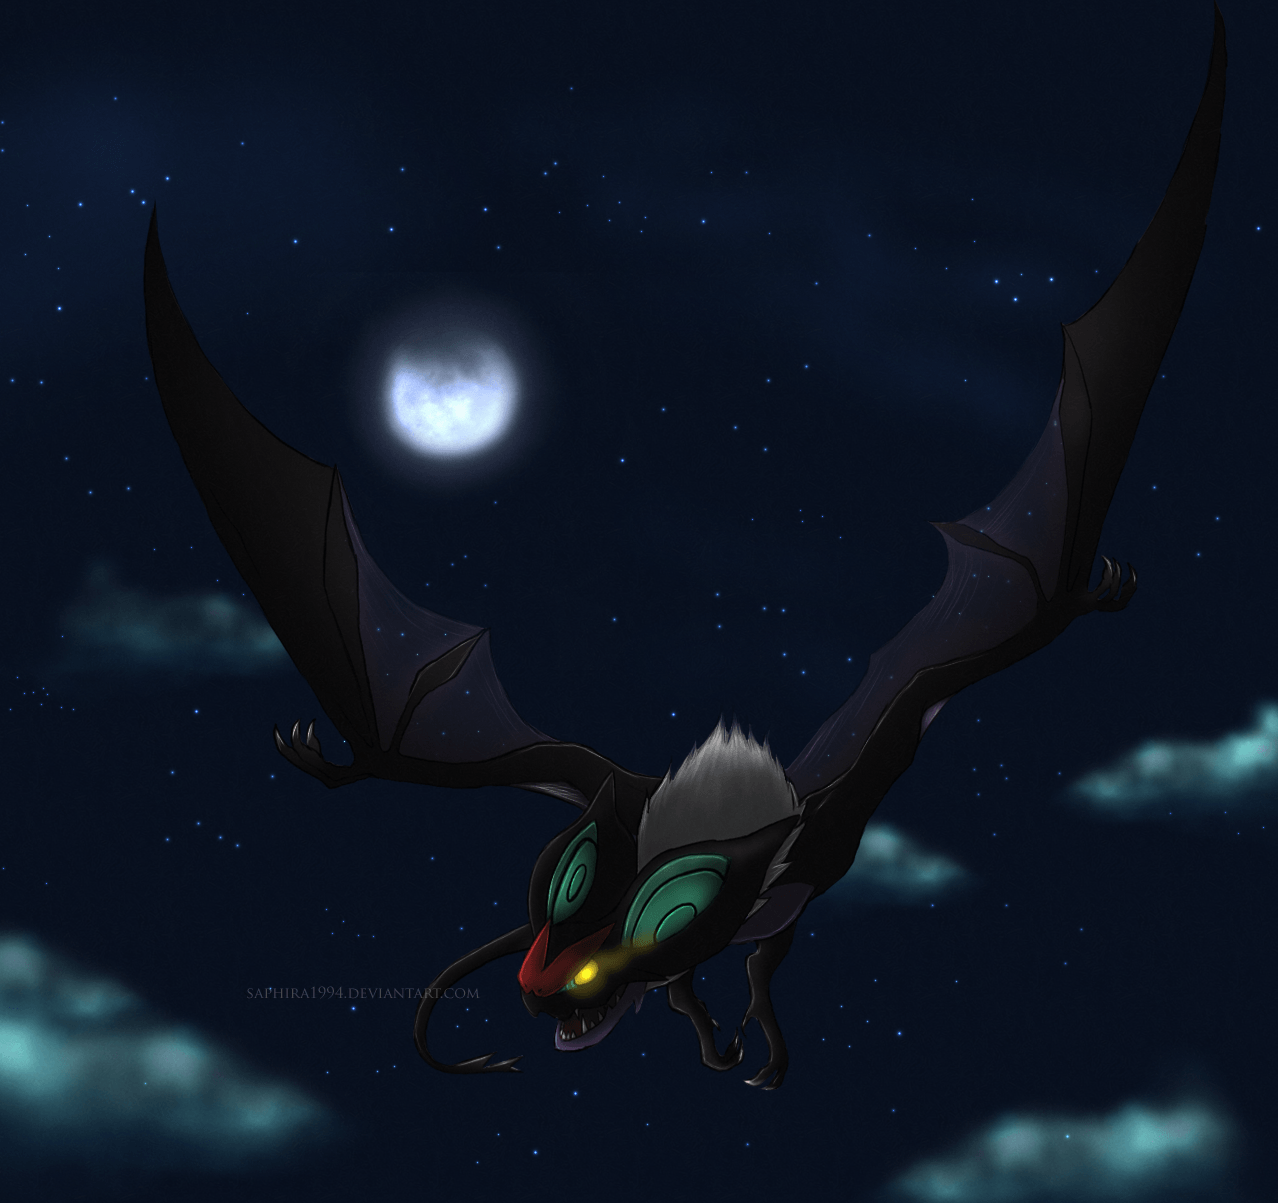 Any awesome Noivern or Zoroark wallpapers out there? : pokemon